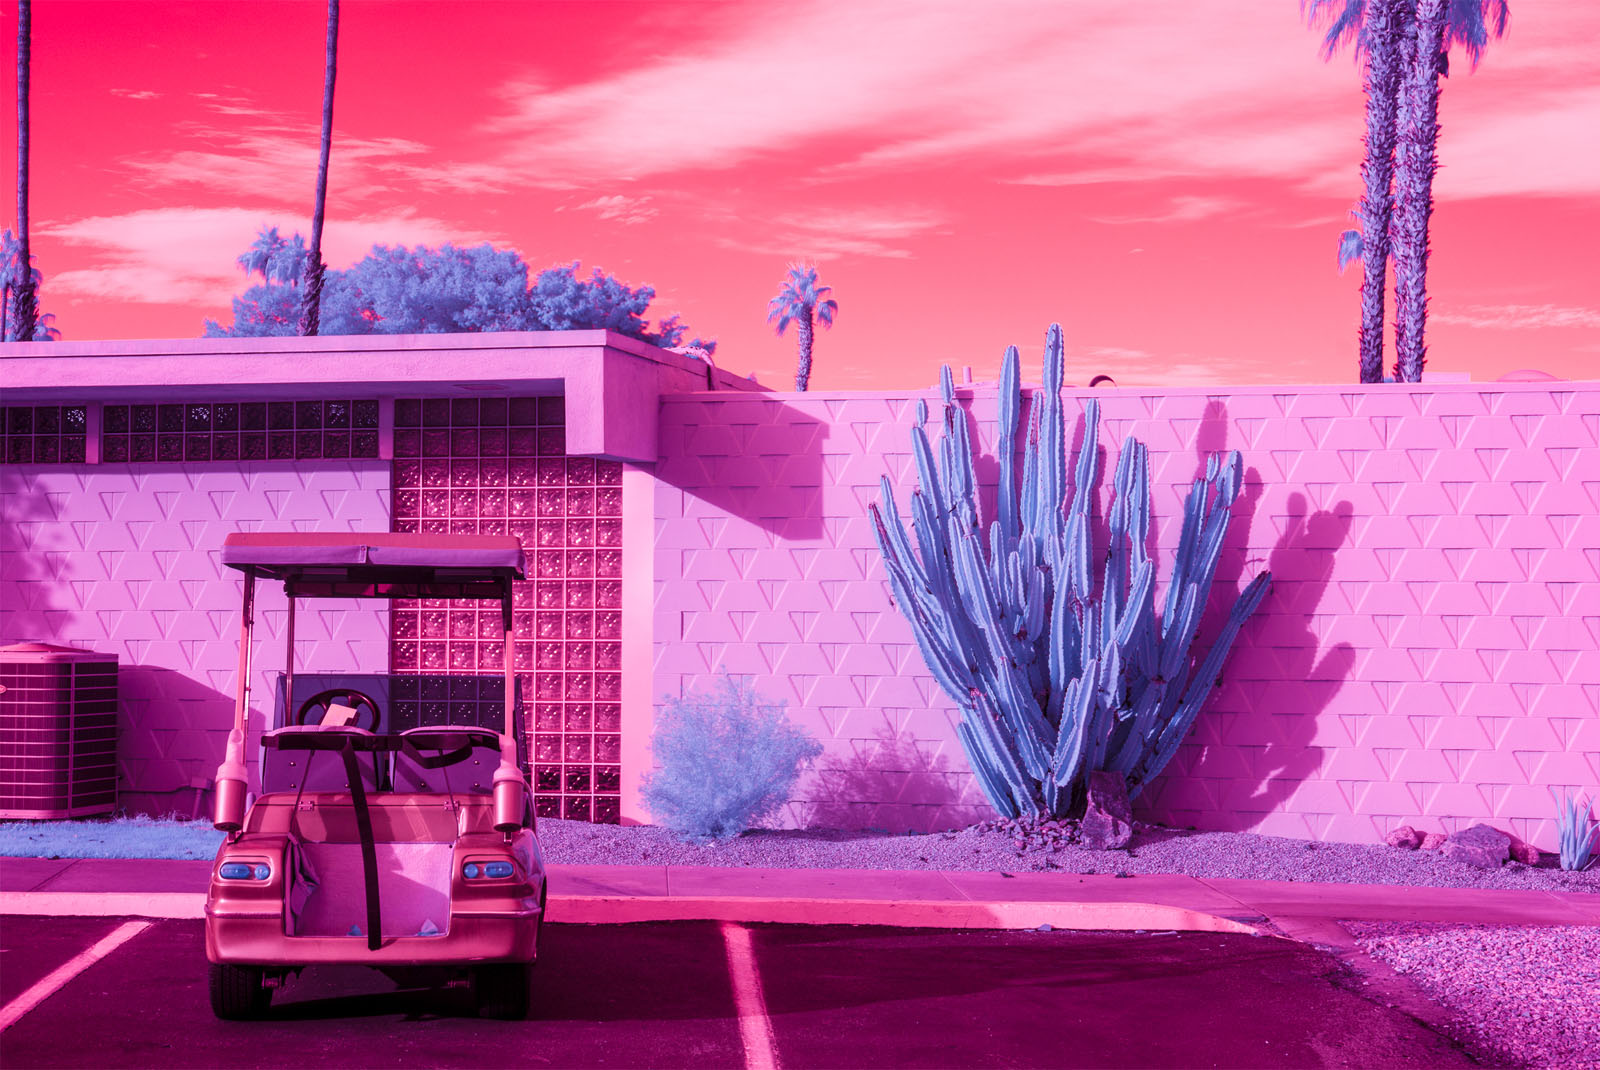 Infrared photograph of a golf cart outside the Seven Lakes Country Club